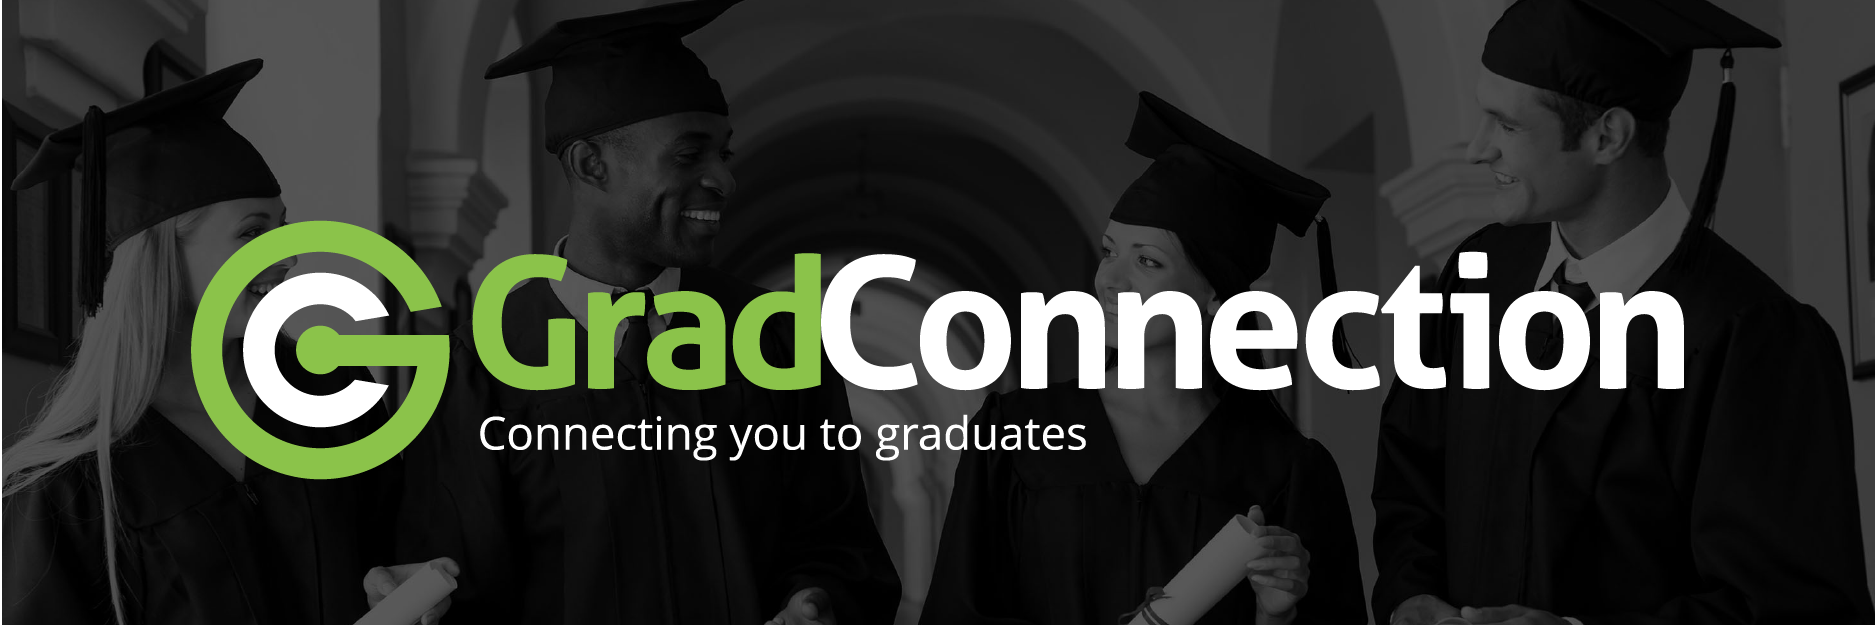 GradConnection ZA profile banner